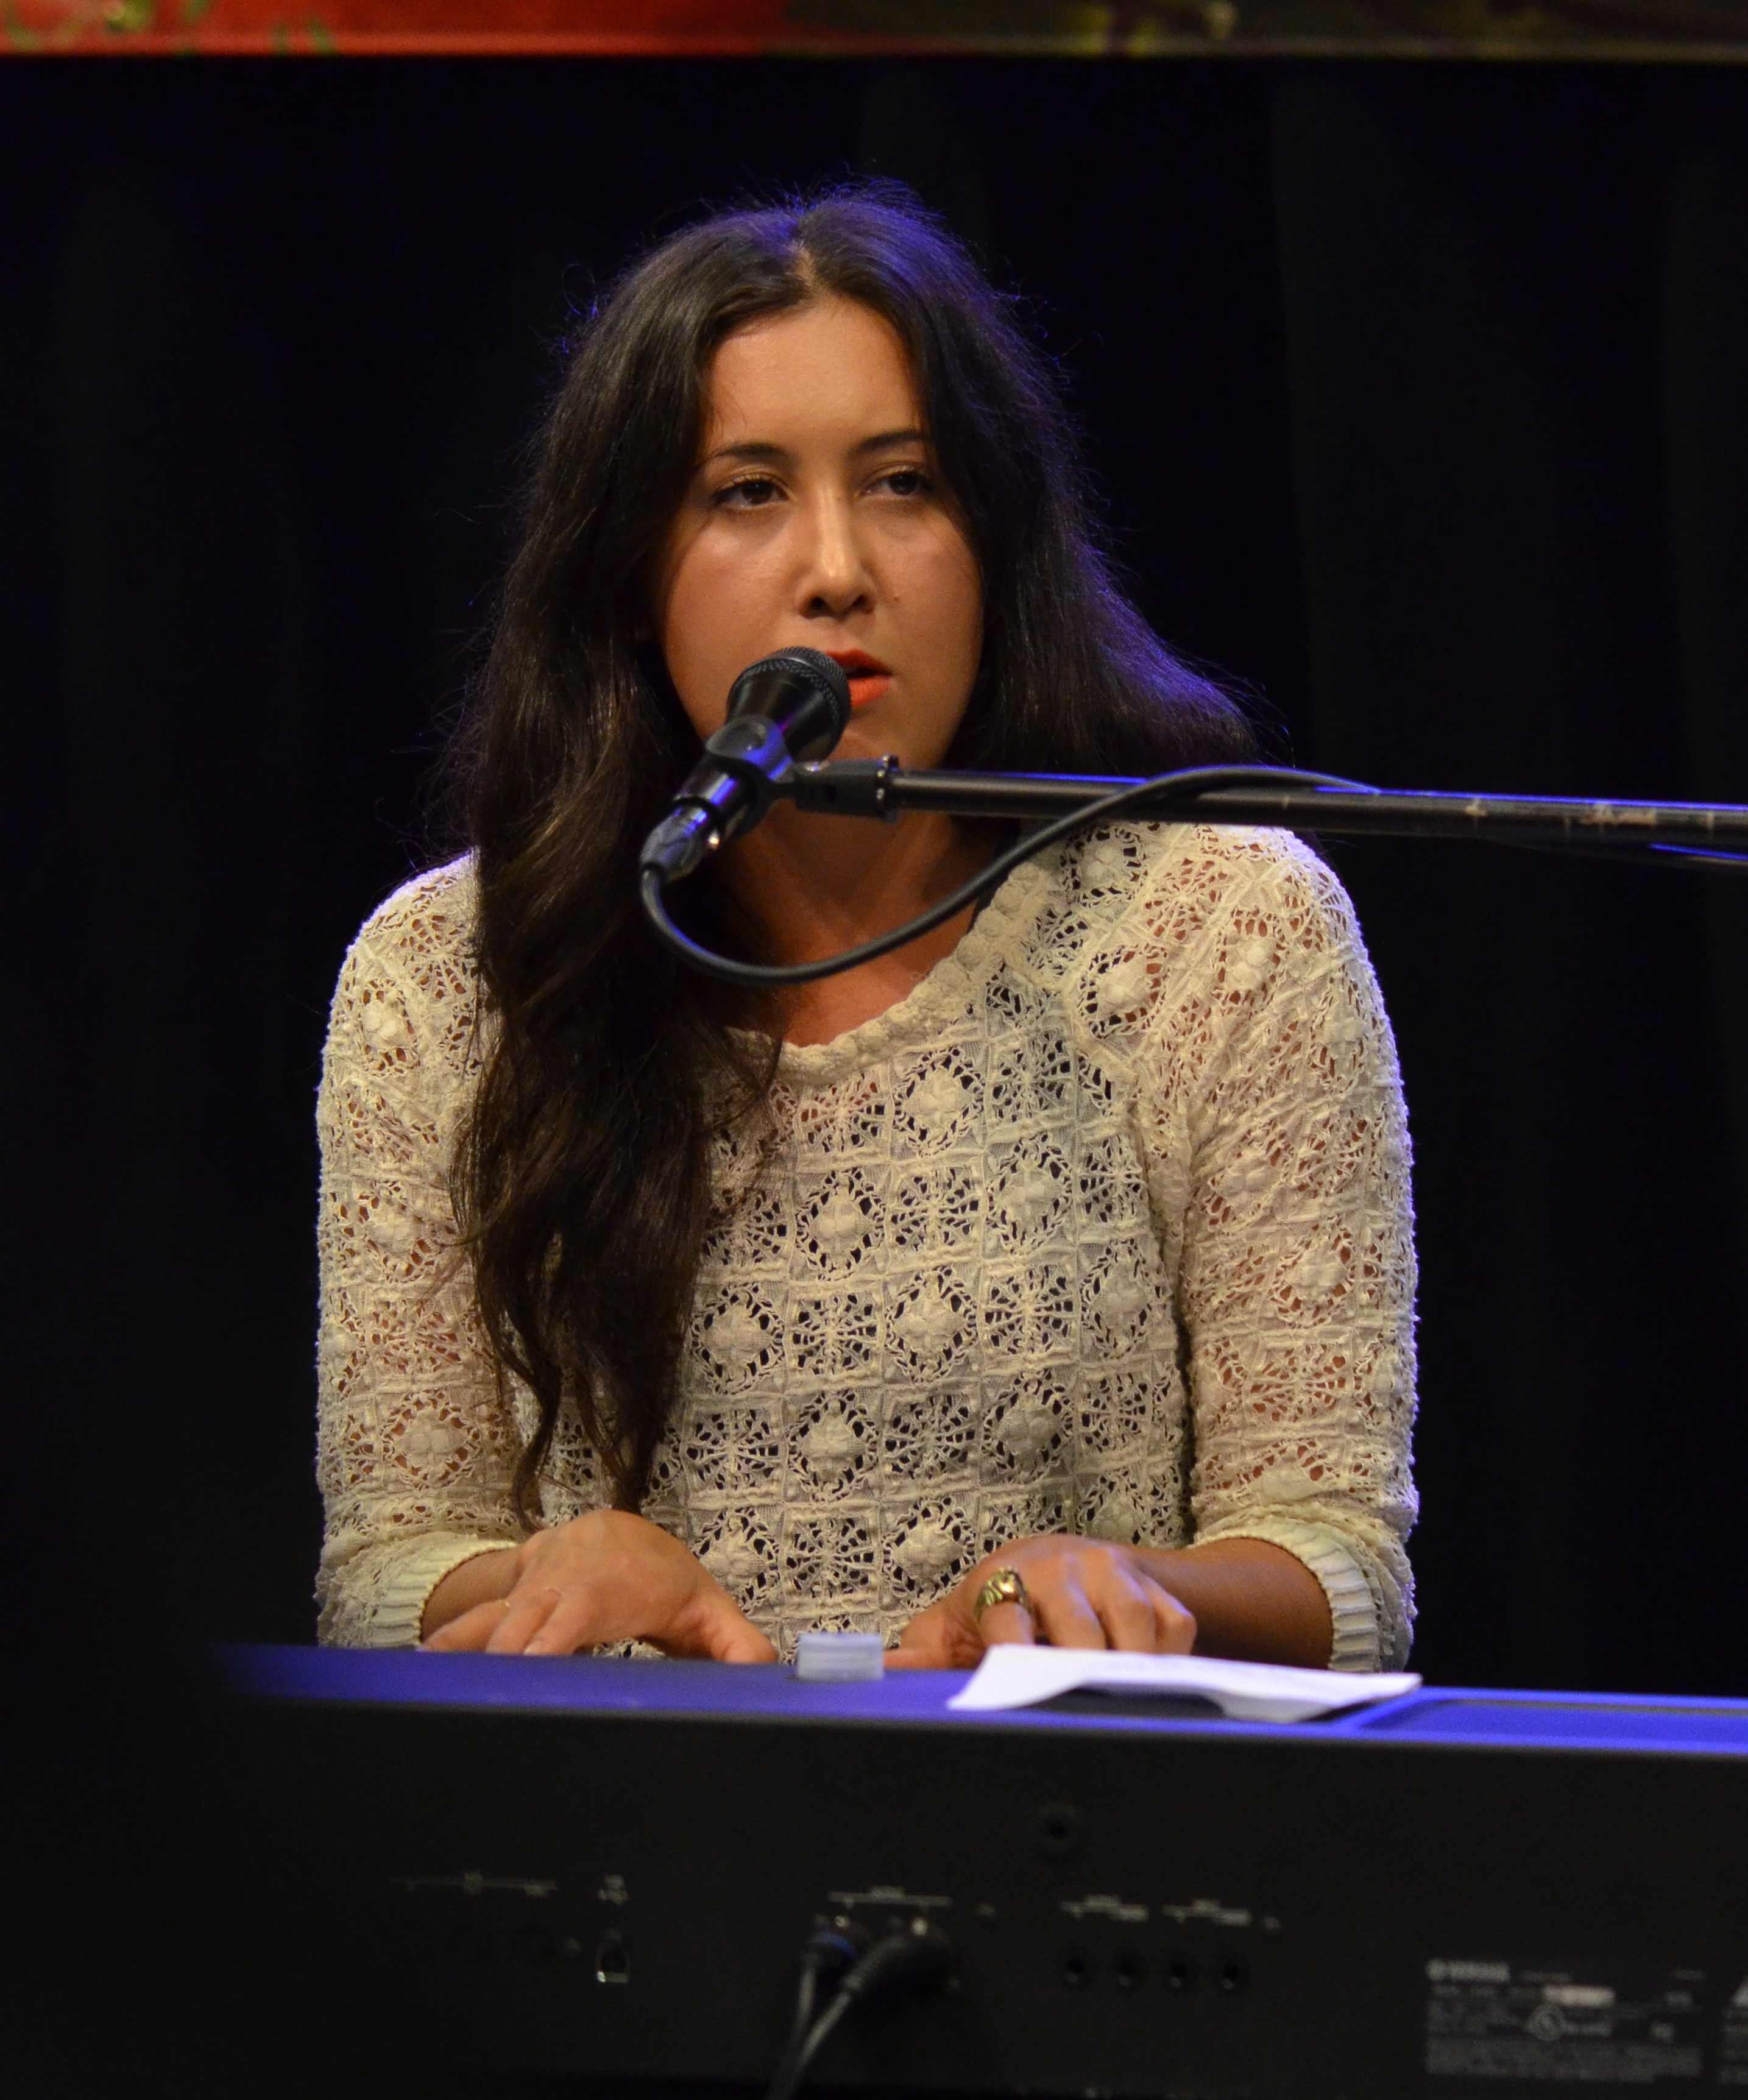 File:Vanessa Carlton 2011.jpg - Wikimedia Commons